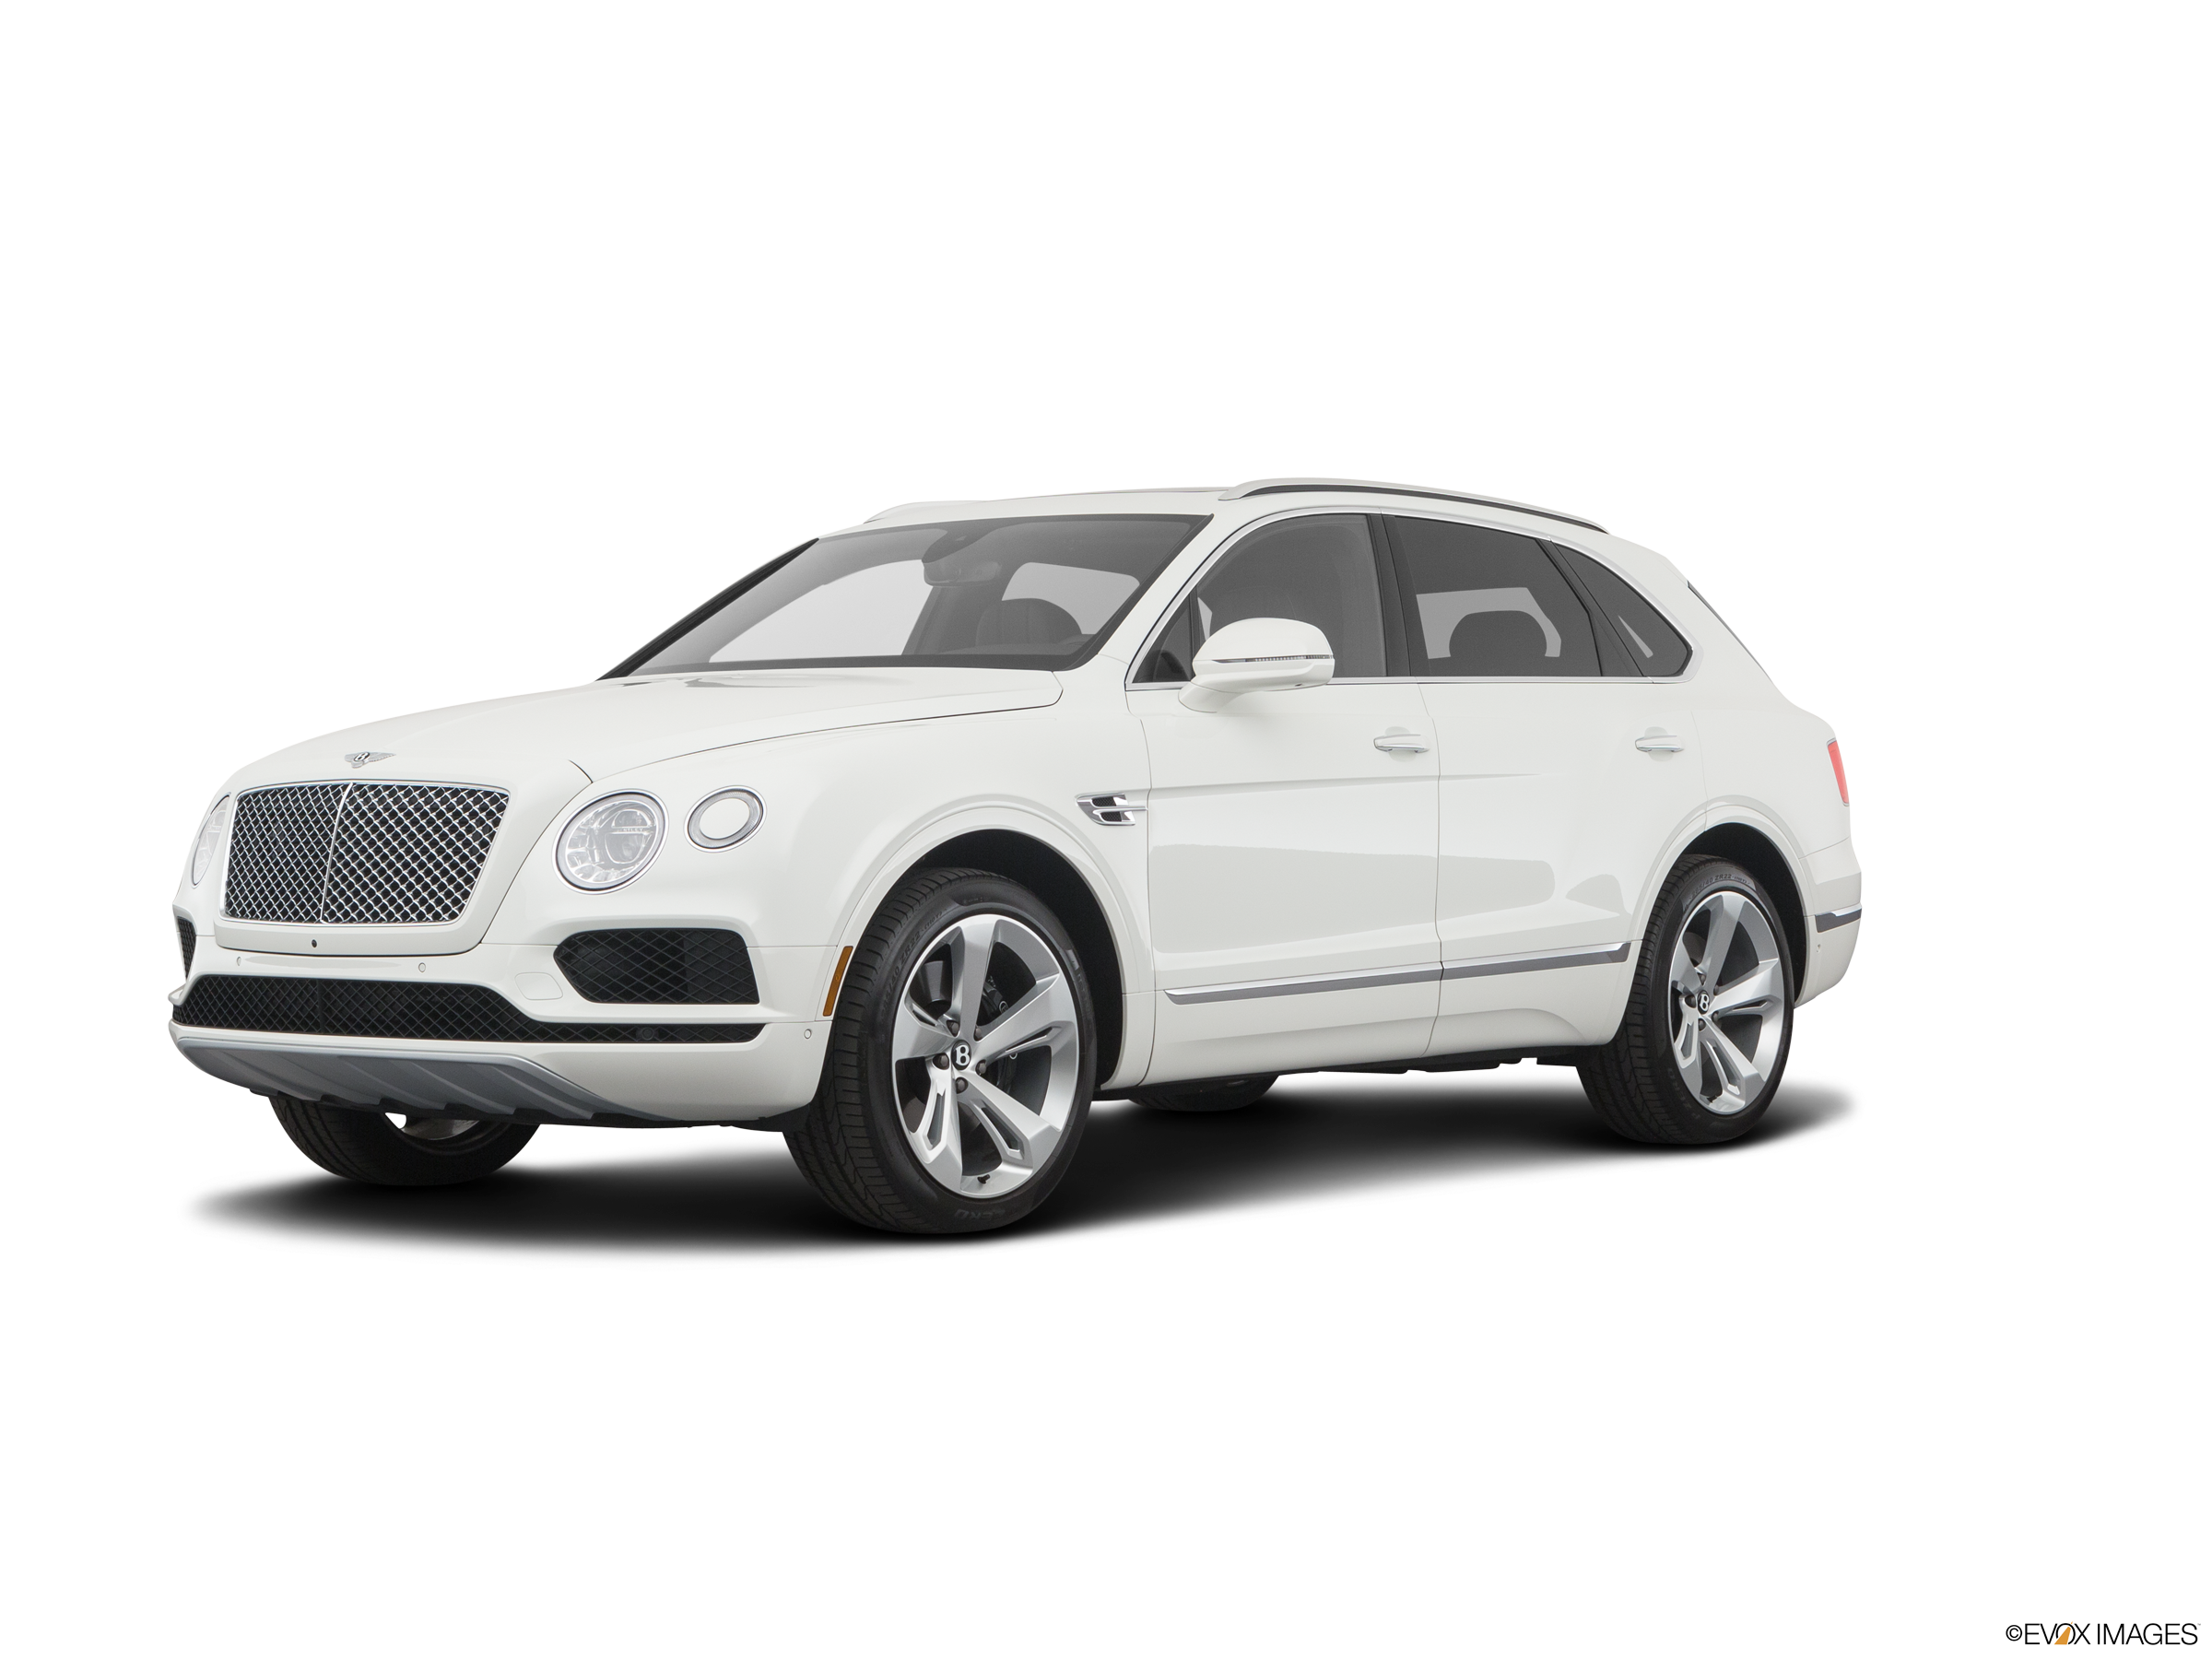 2019 Bentley Bentayga Prices Reviews Pictures Kelley Blue Book